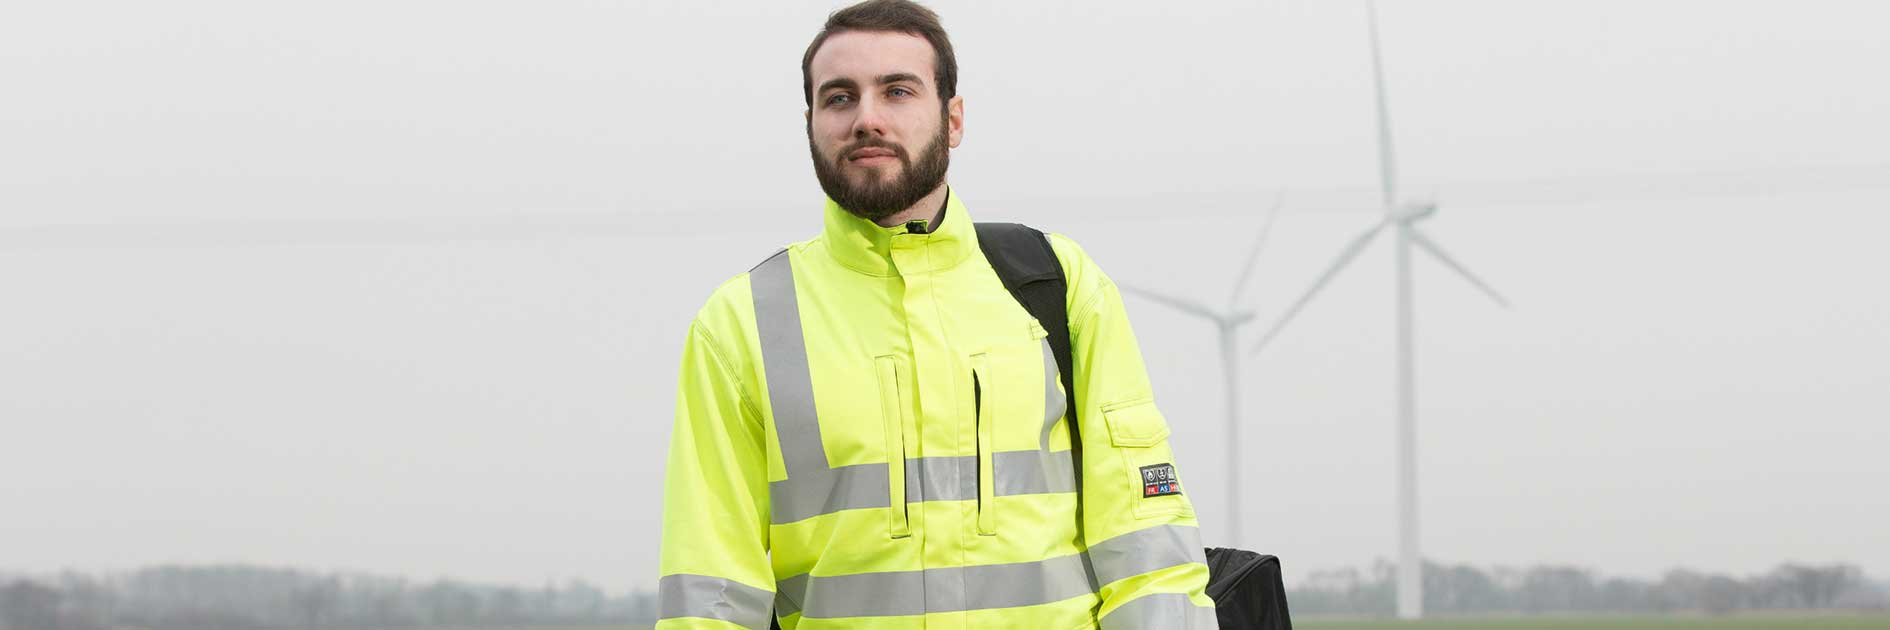 ARC Flash Protection | Reece Safety